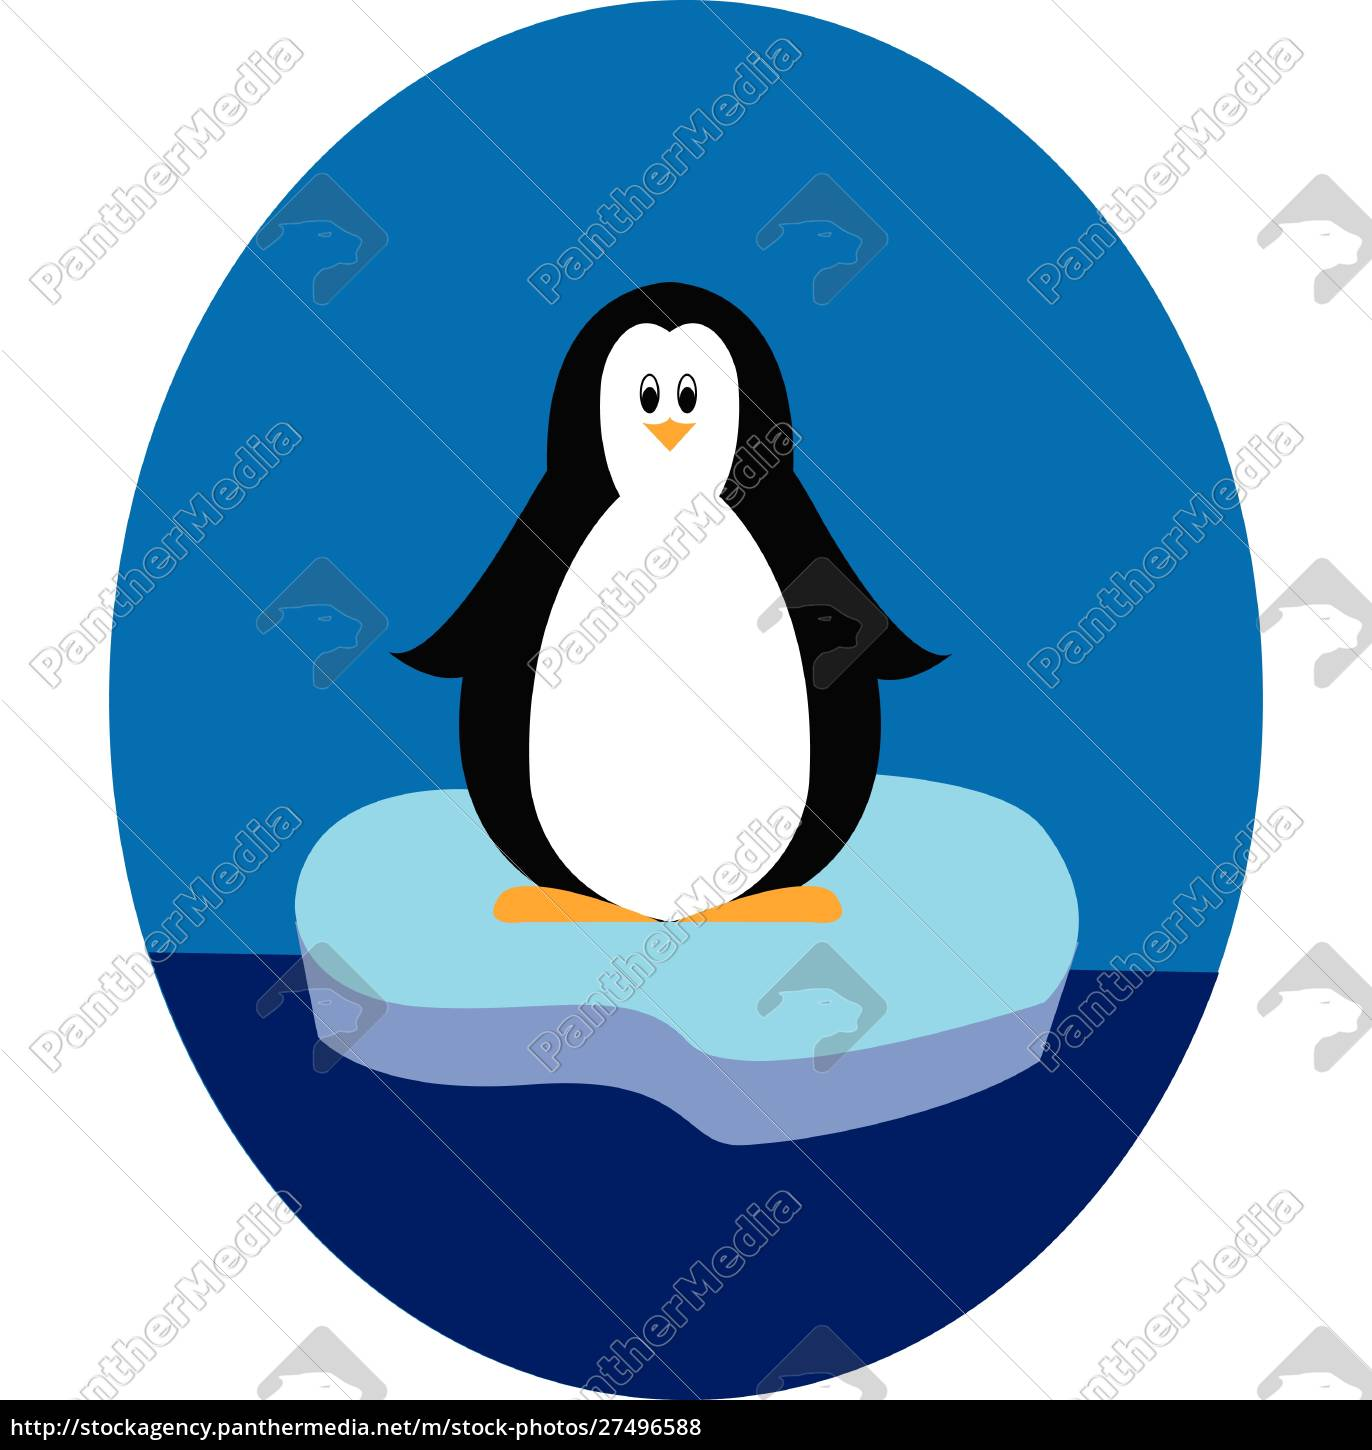 penguin, standing, on, iceberg, illustration, vector - 27496588